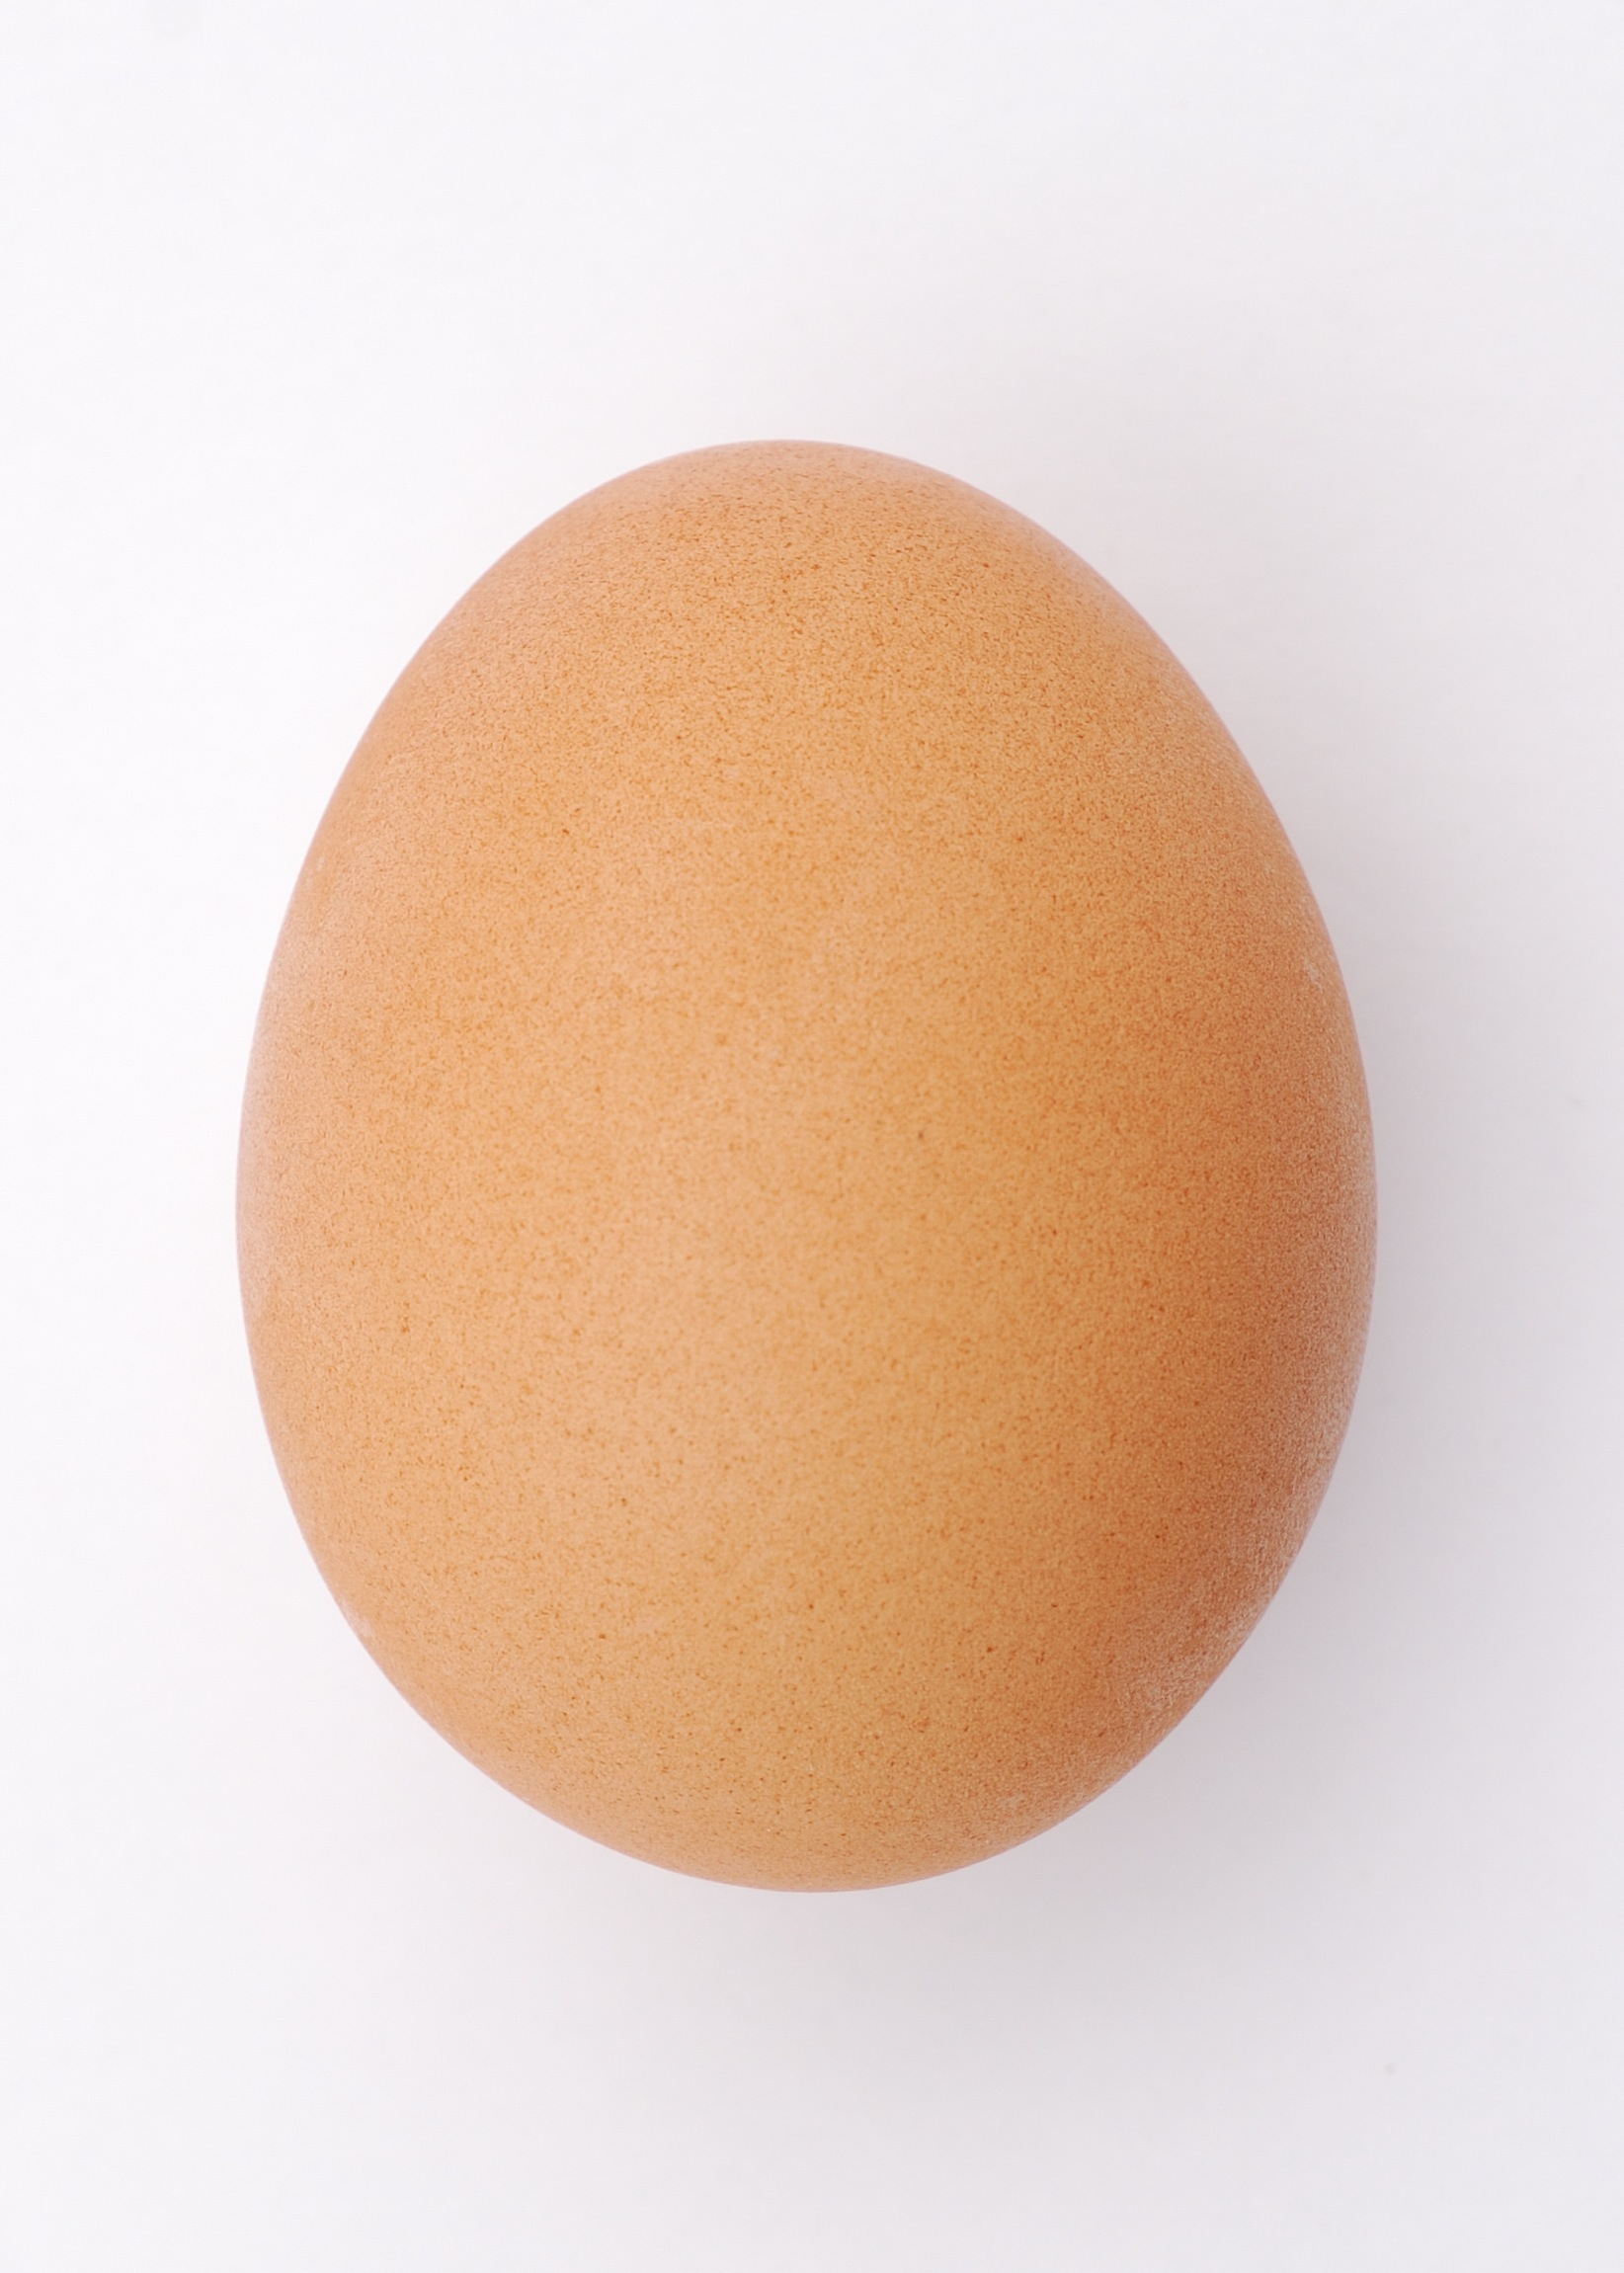 A chicken's egg by Sun Ladder for Wikimedia